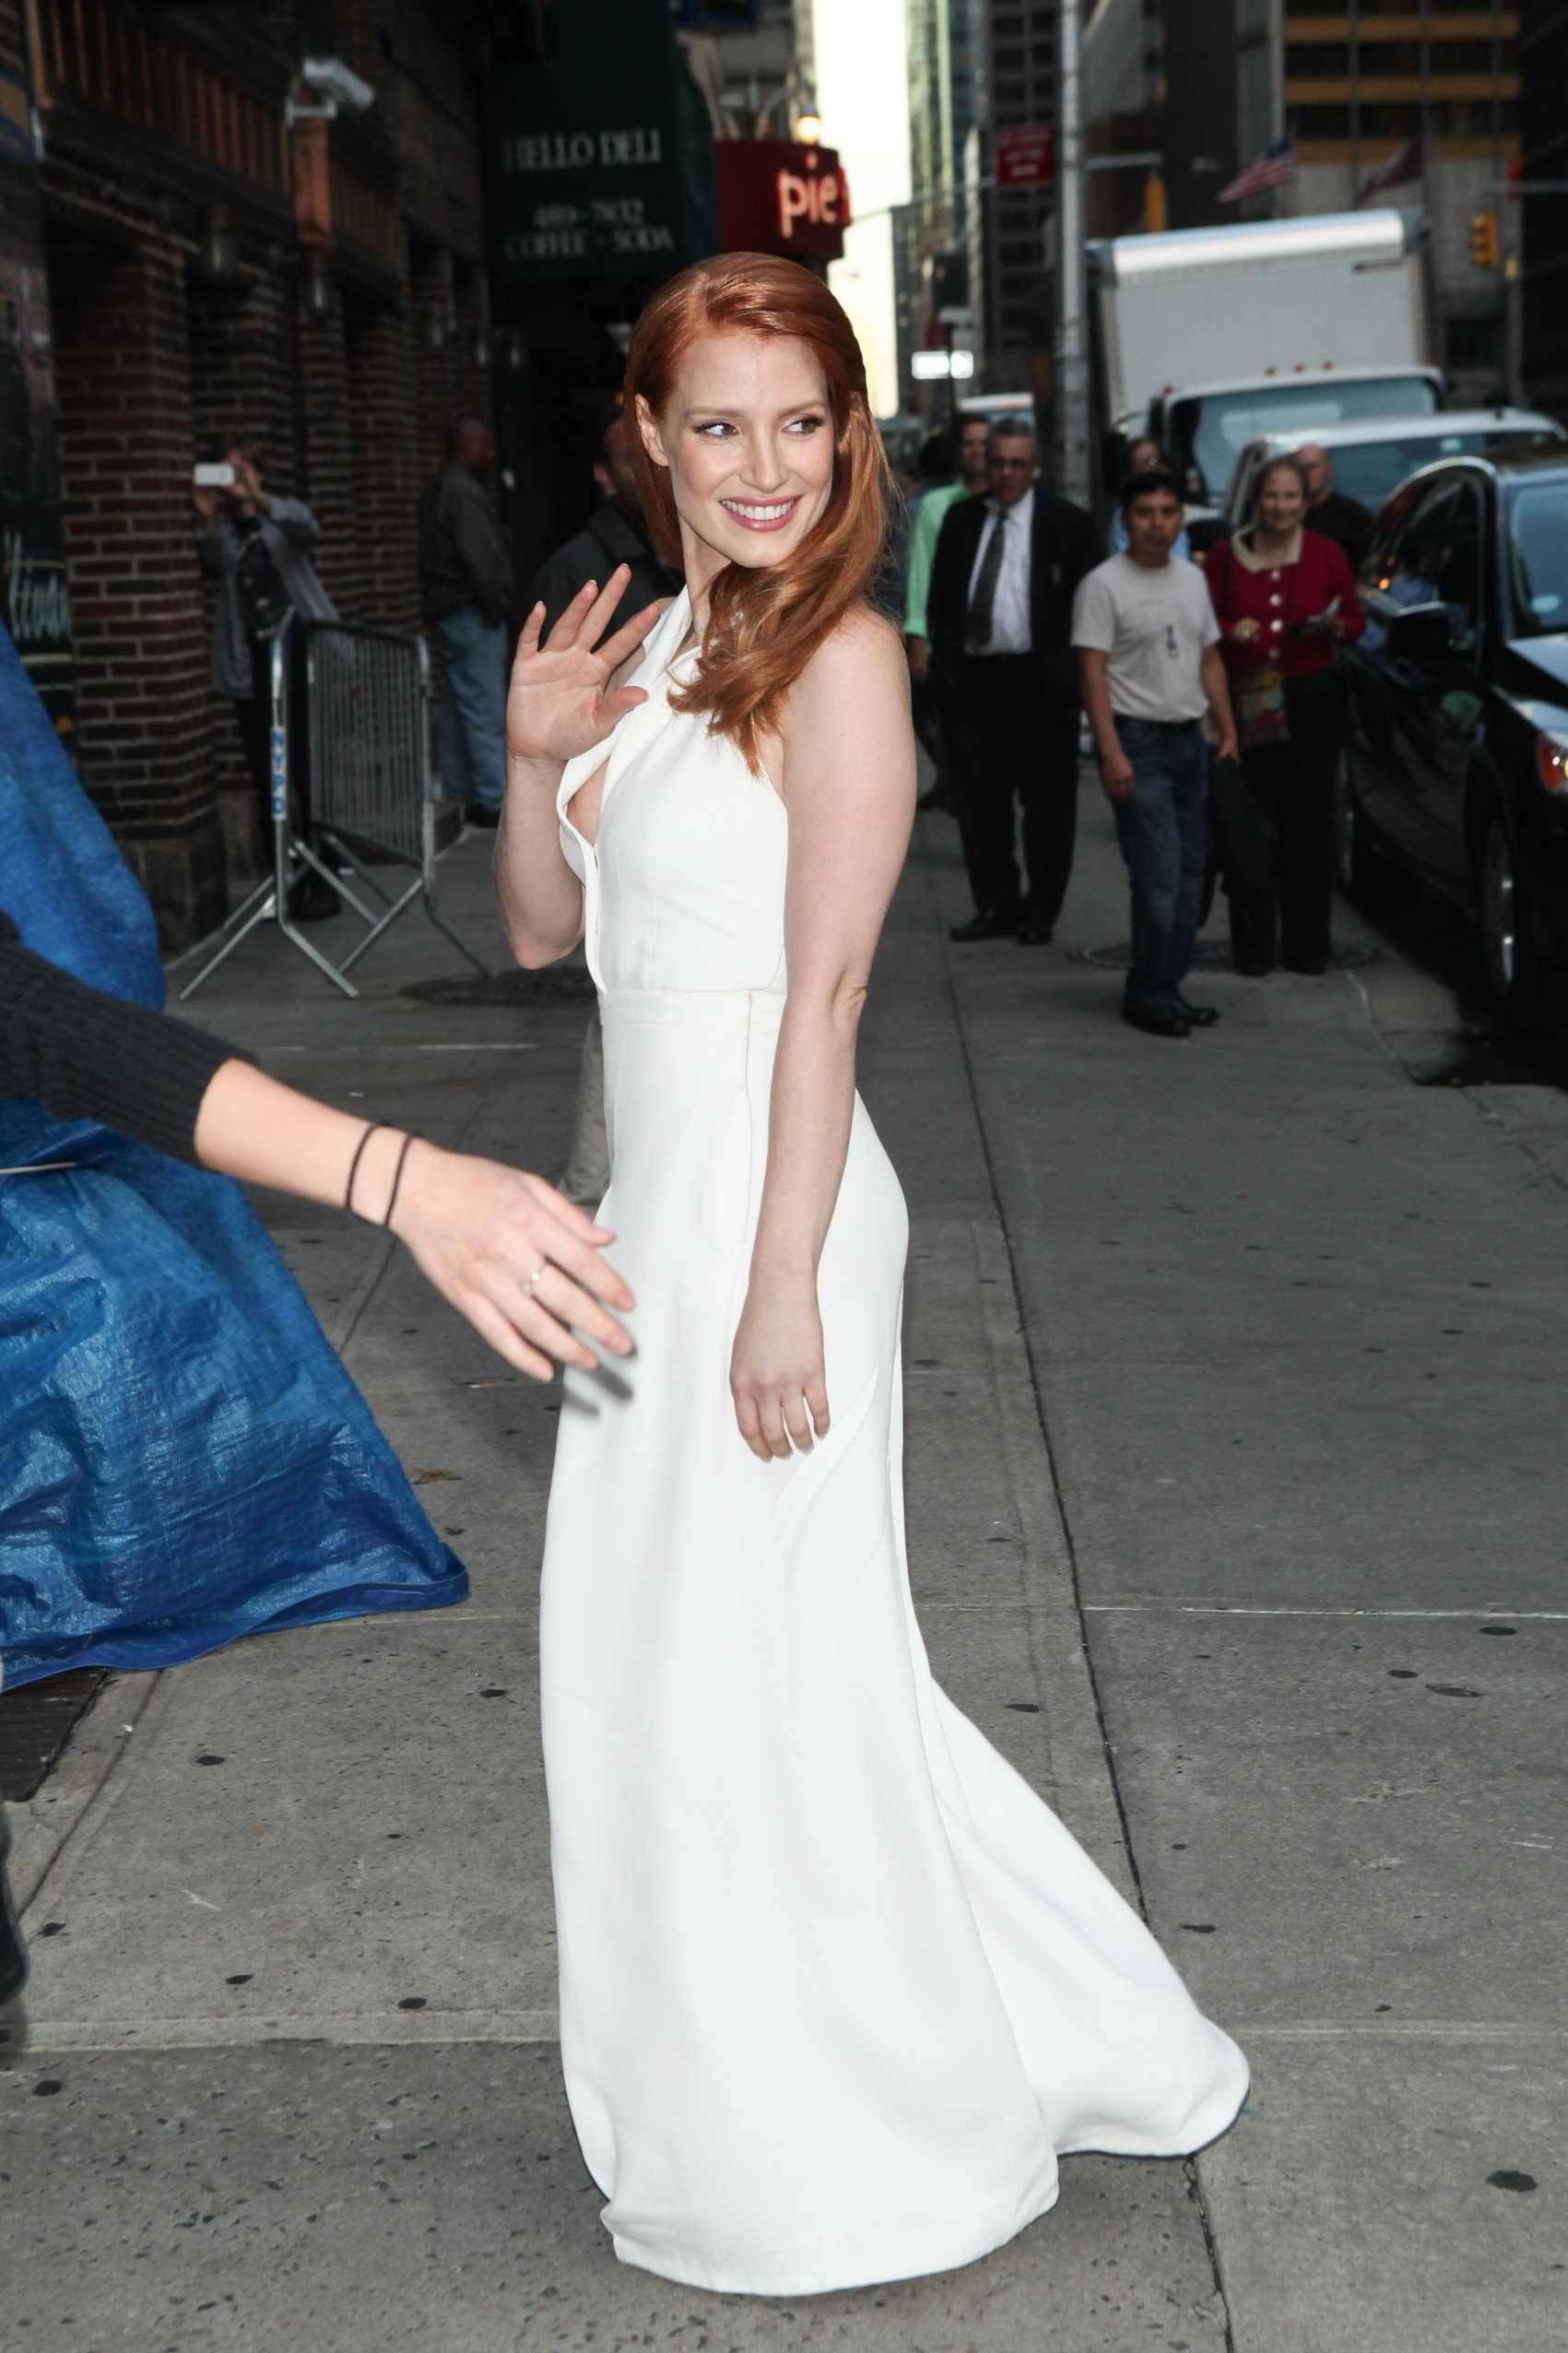 Jessica Chastain – 2014-10-16 – arriving at the 'Late Show with David Letterman' in New York (no. 3678)